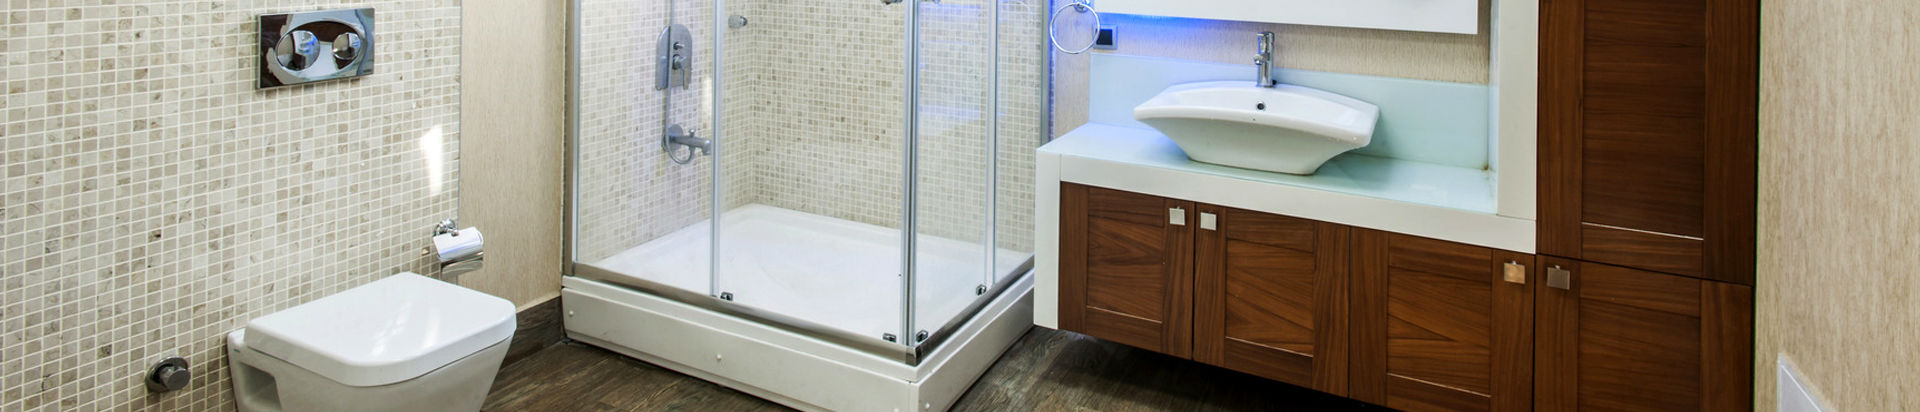 Bathroom remodeling houston bathroom remodeling katy tx for Bathroom designs houston